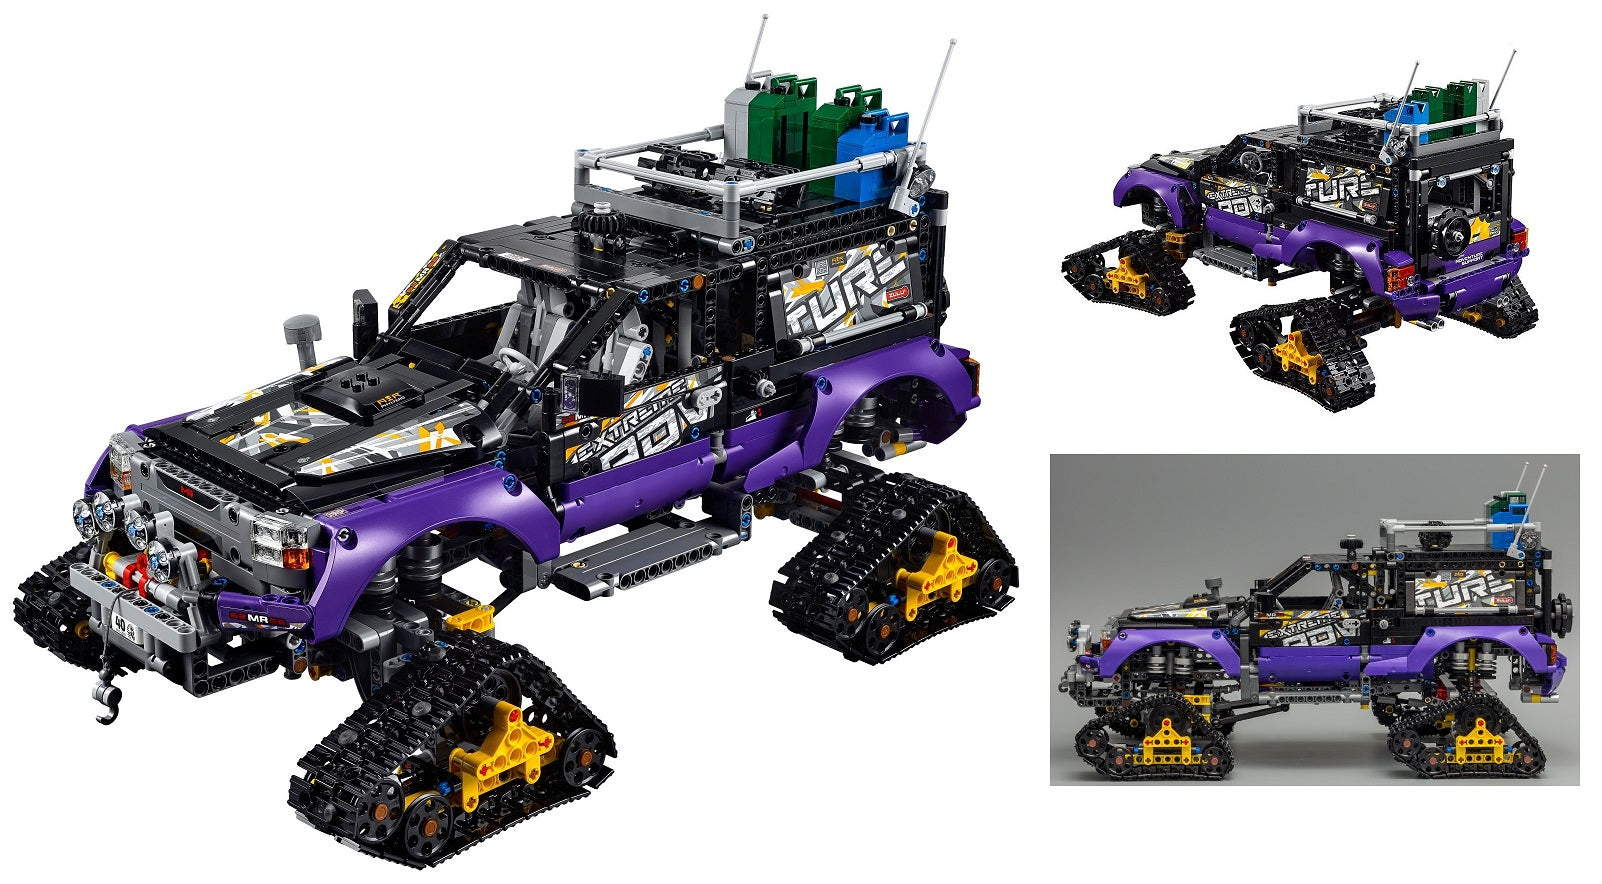 LEGO Technic 2-in-1 Building Set - Extreme Adventure / Mobile Base Vehicle (42069)